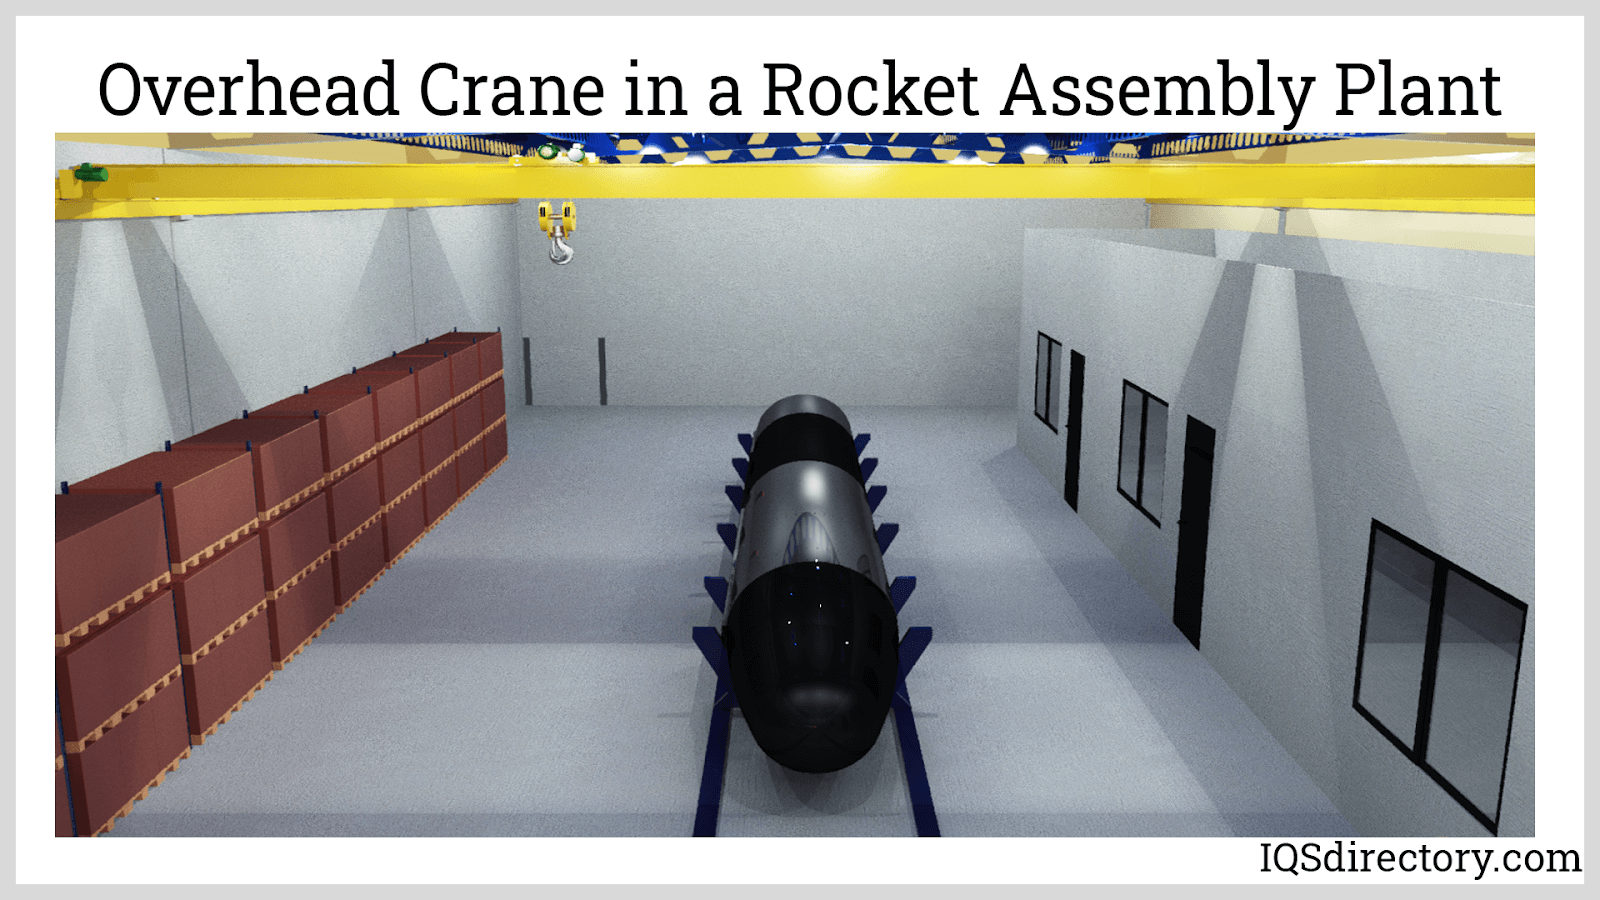 Overhead Crane in a Rocket Assembly Plant